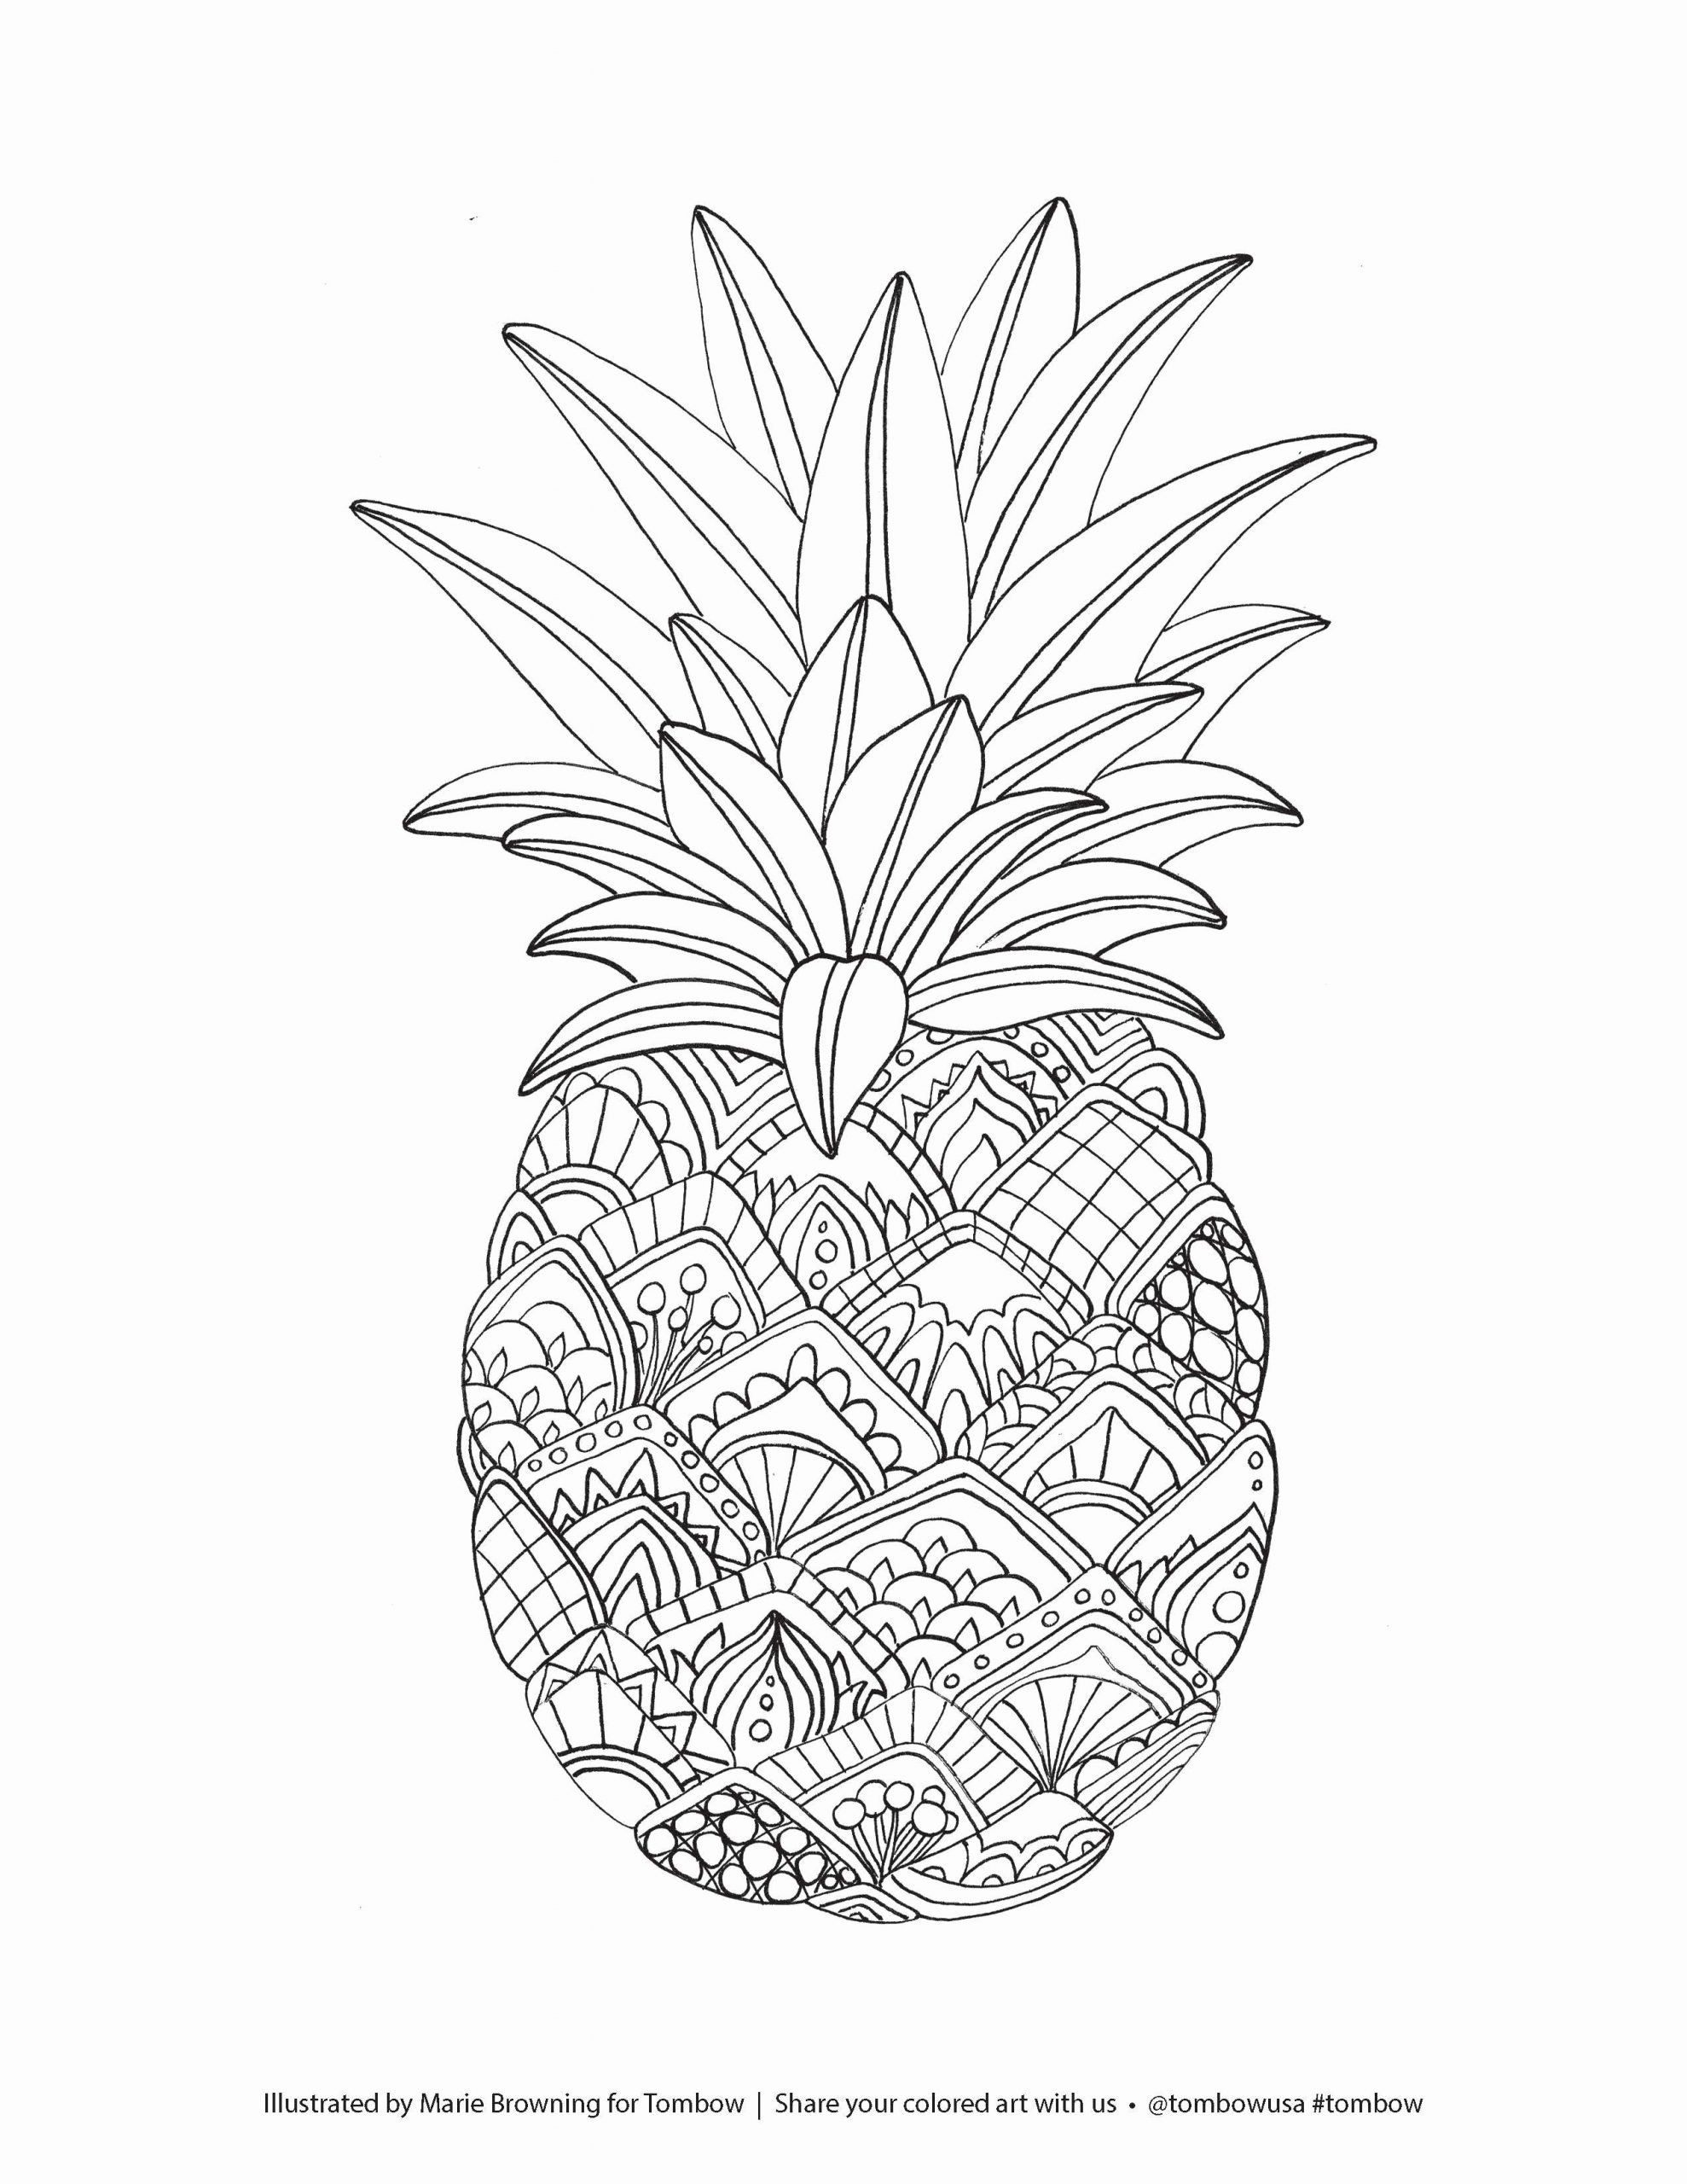 Cute Fruit Coloring Pages Fruits Coloring Pages Printable Pineapple Coloring Page In 2020 Fruit Coloring Pages Mandala Coloring Pages Animal Coloring Pages